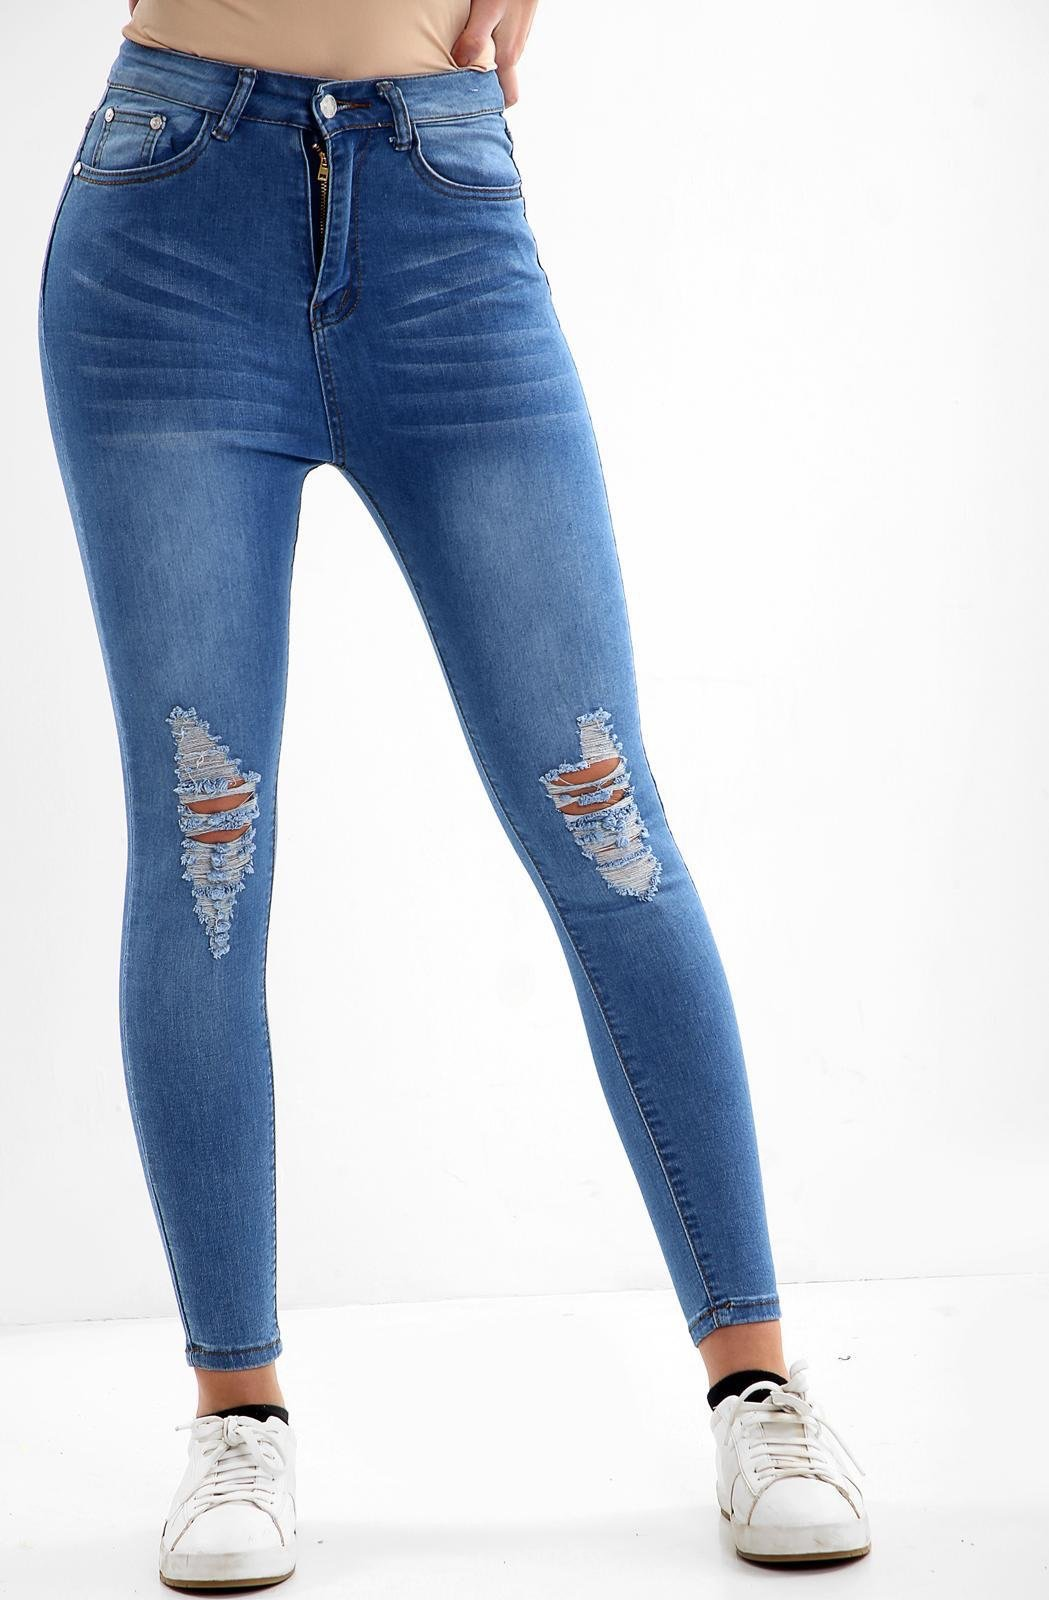 Blue Ladies High waisted knee cut jeans-DW1121